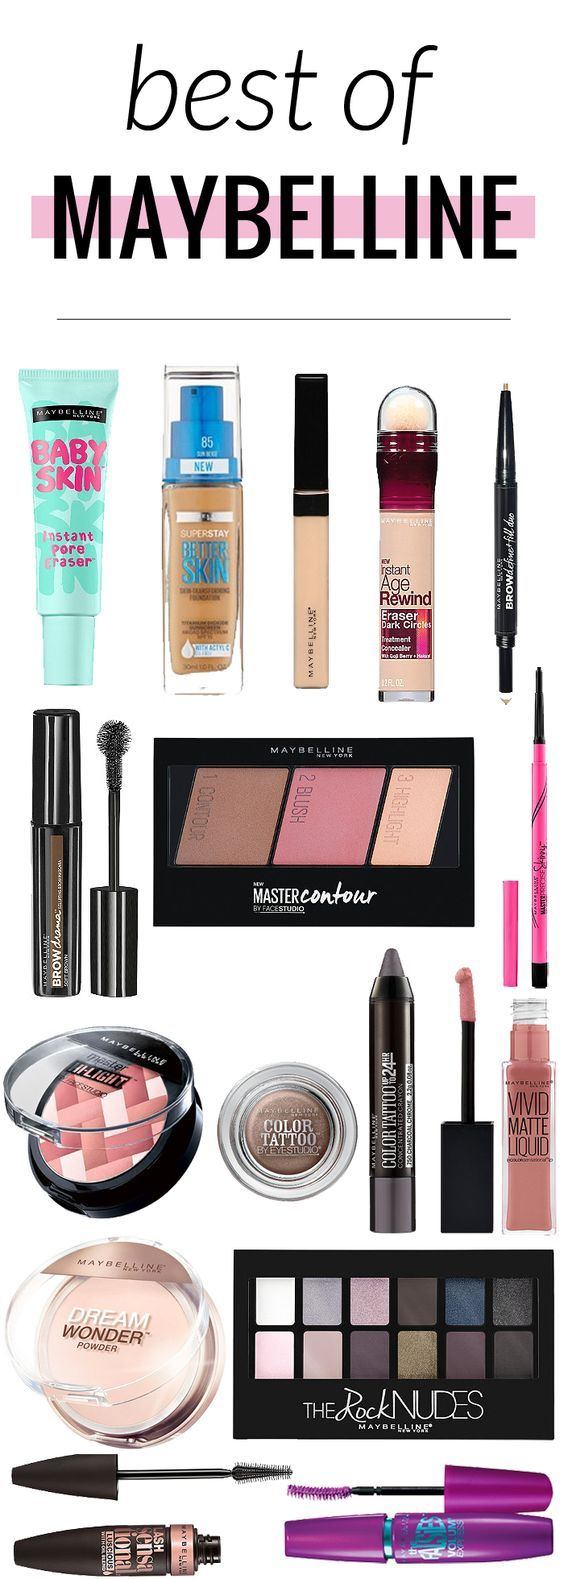 The best of Maybelline makeup - great reference for when you're out shopping...